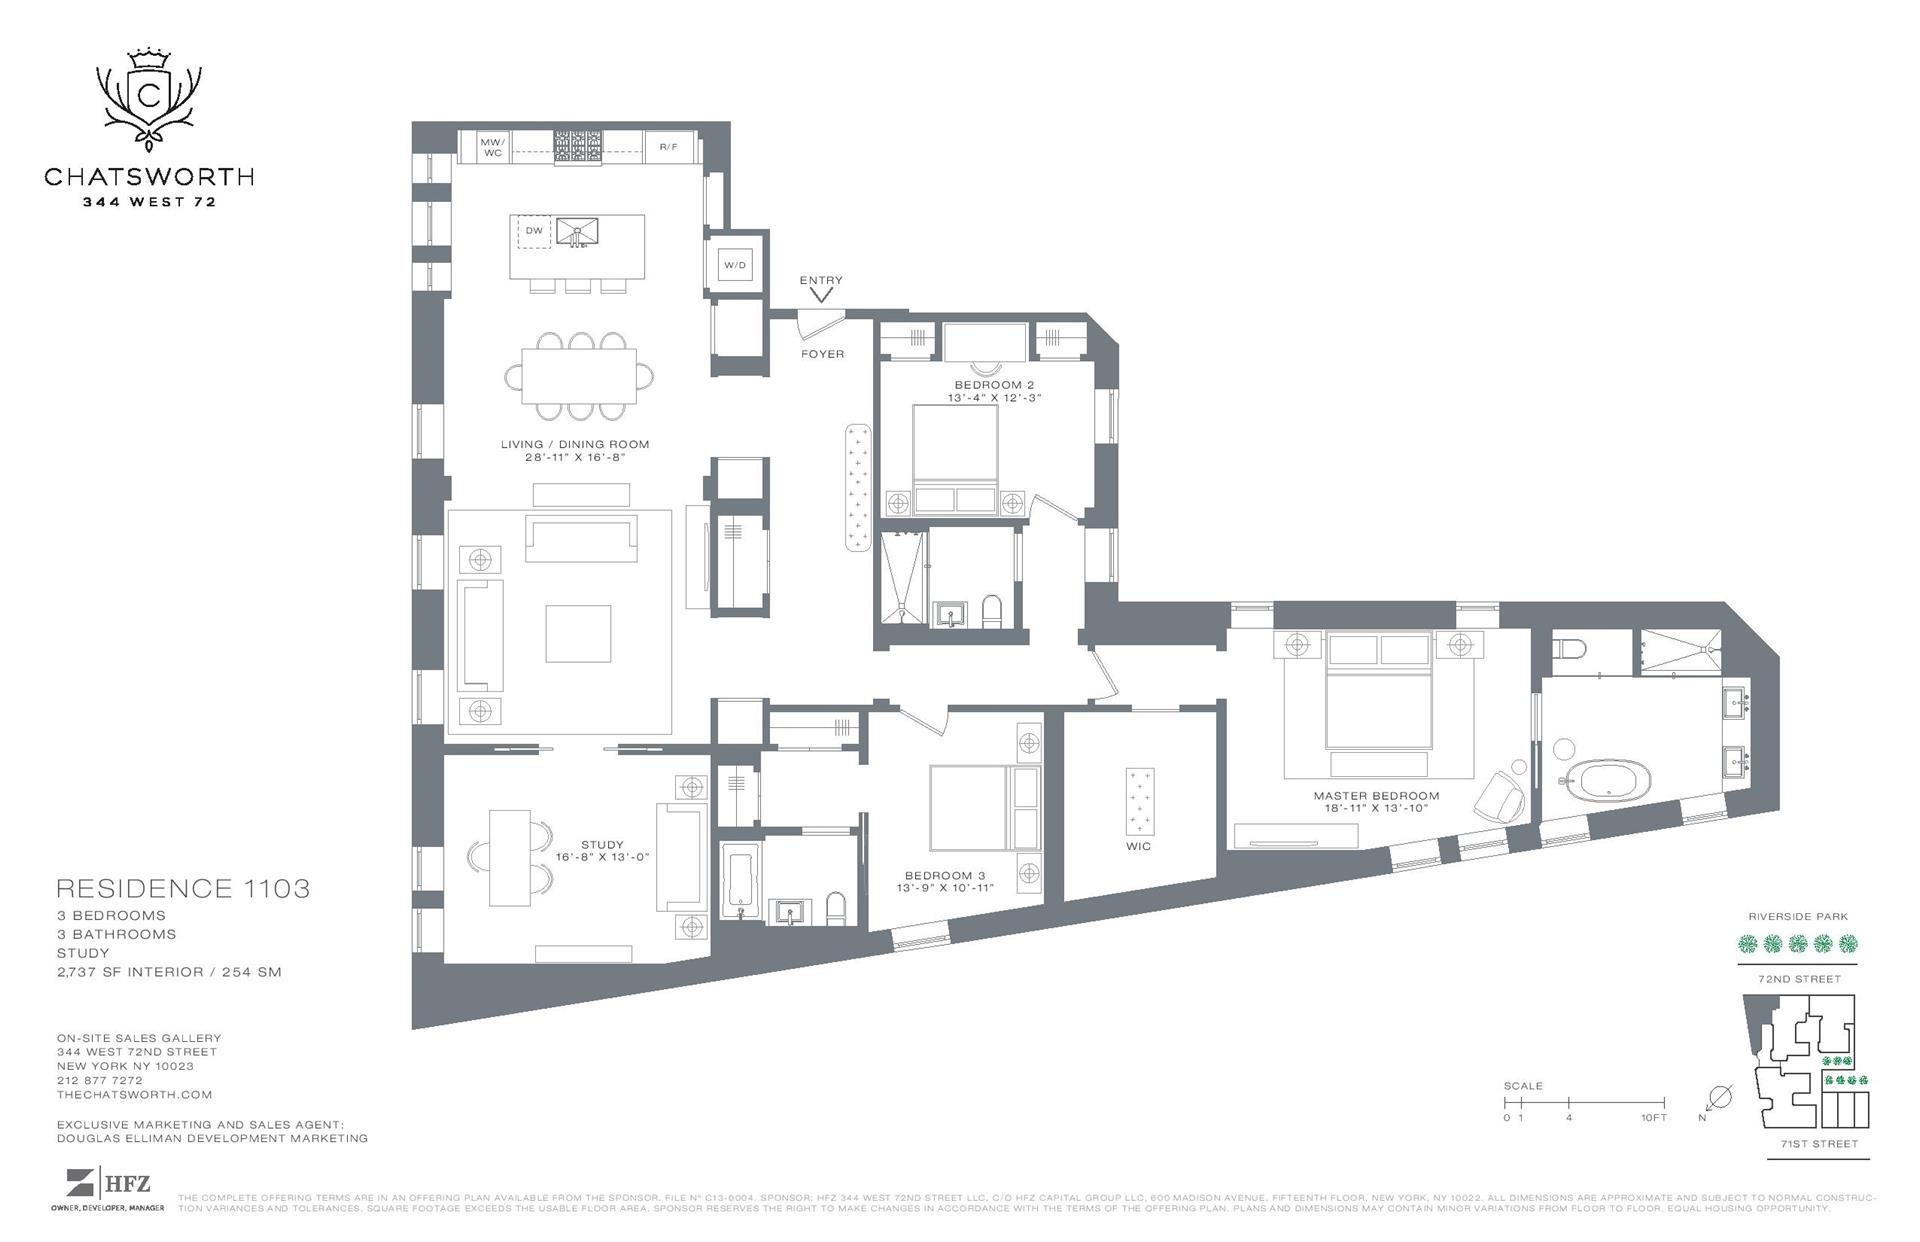 Floor plan of The Chatsworth, 344 West 72nd St, 1103 - Upper West Side, New York